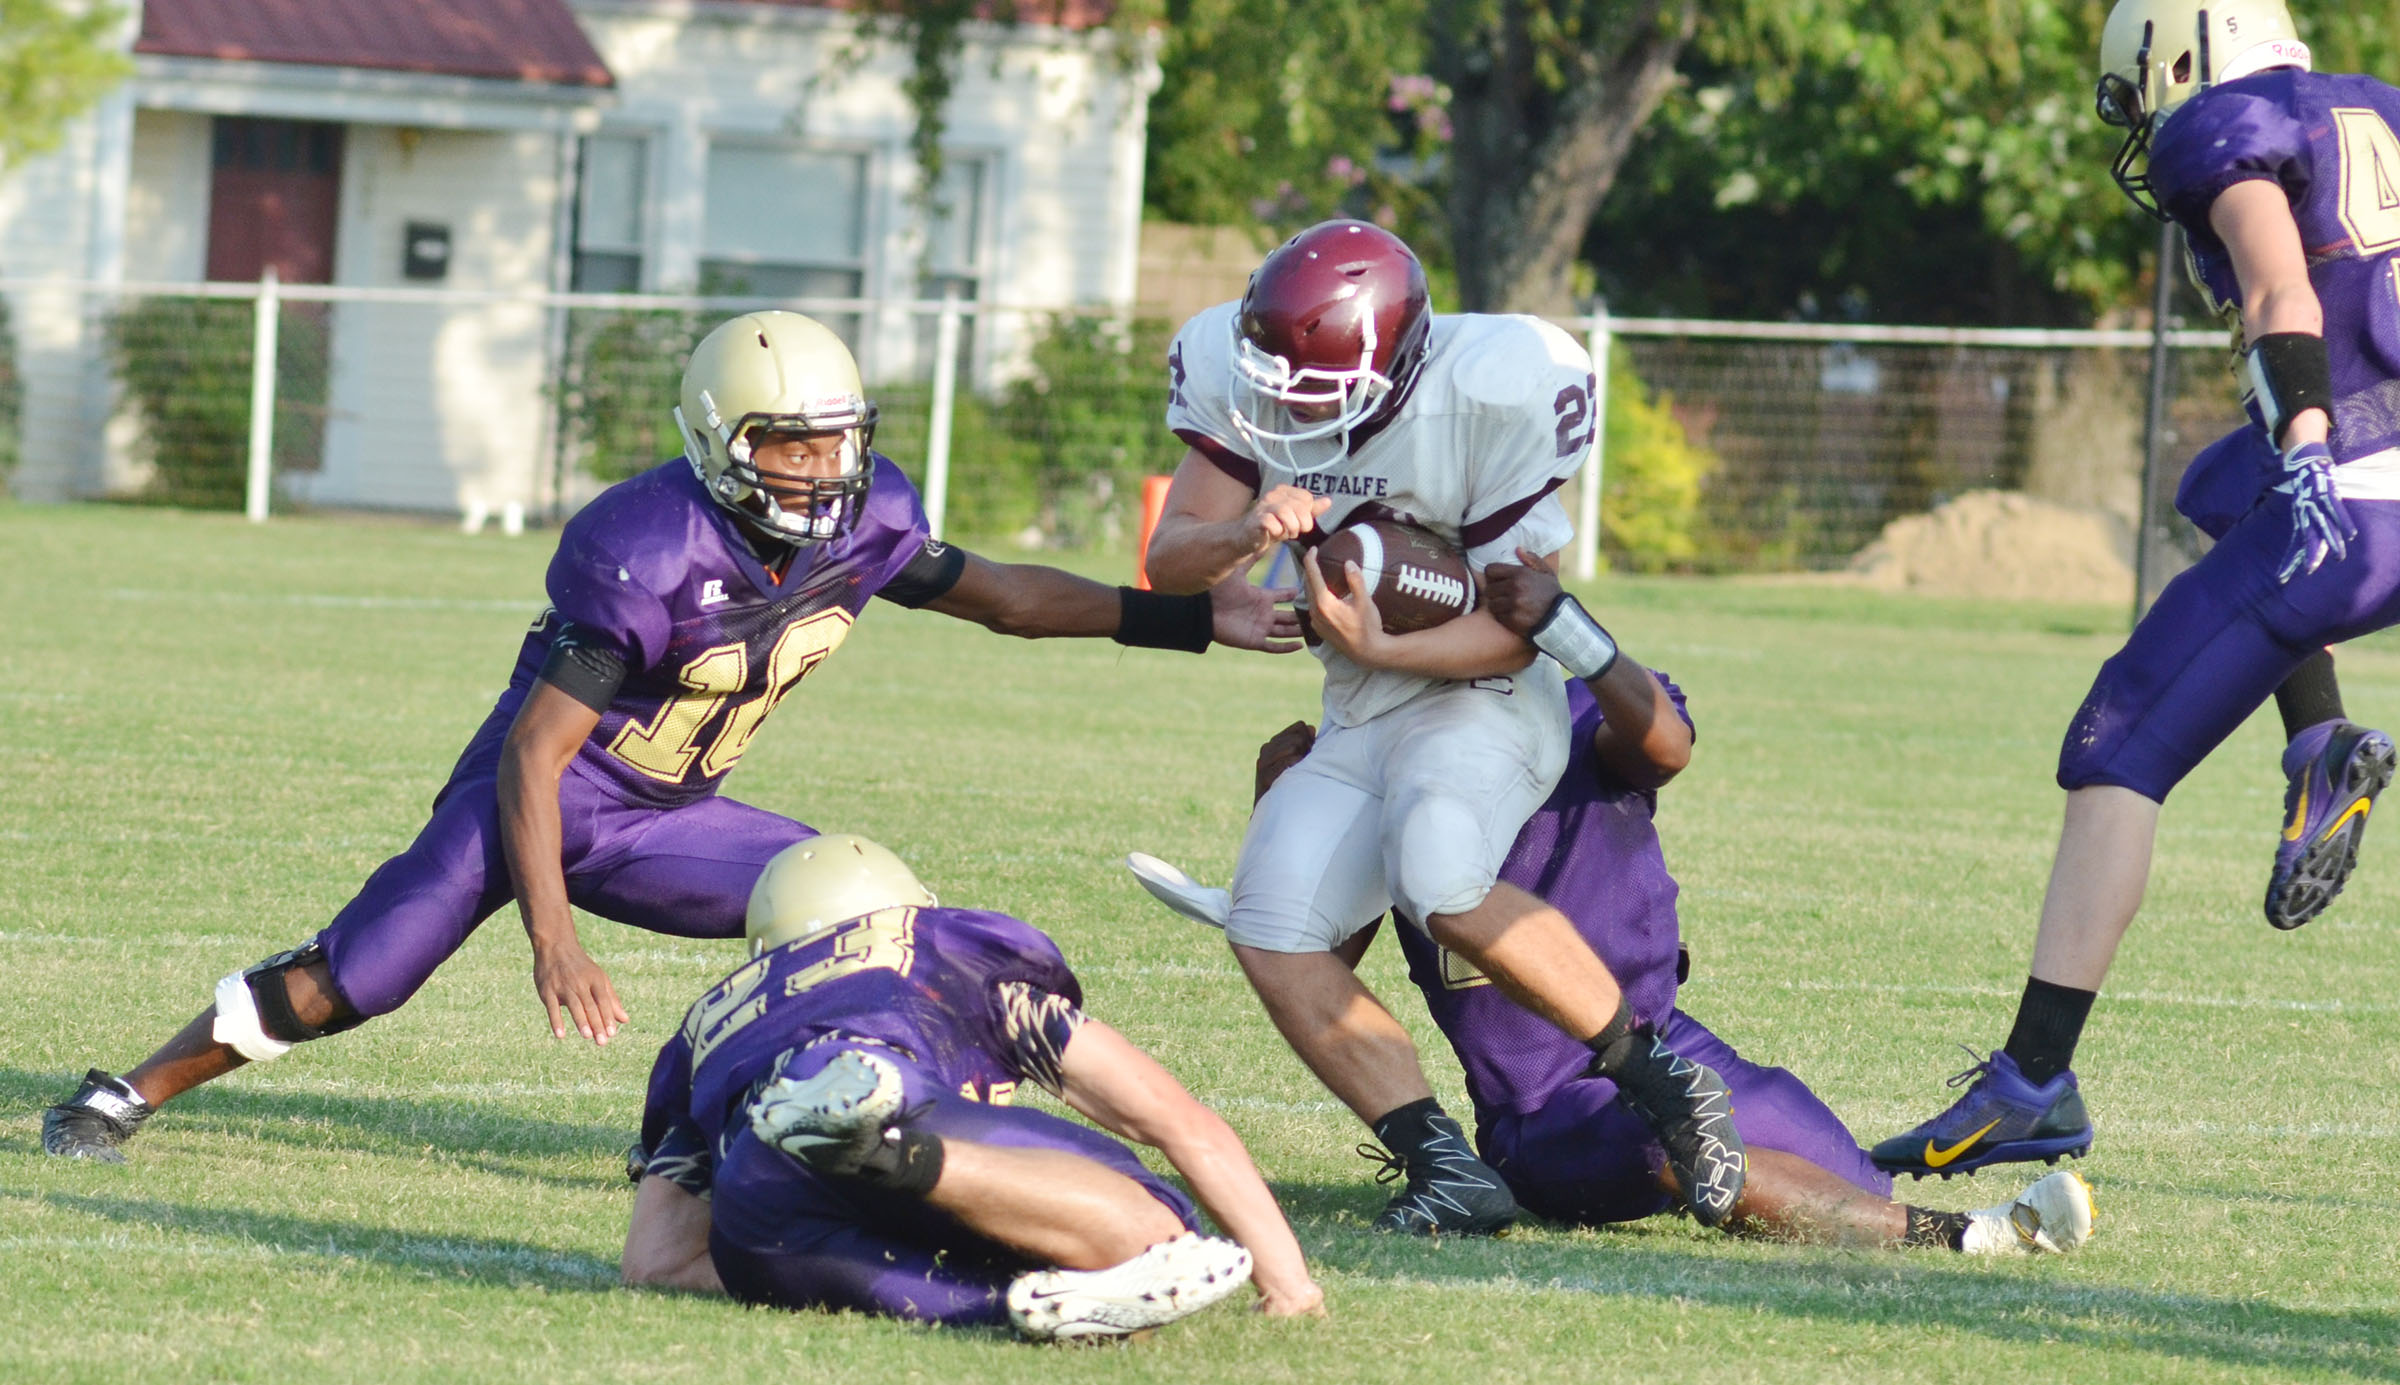 CHS senior Devonte Cubit, at left, and his teammates tackle.